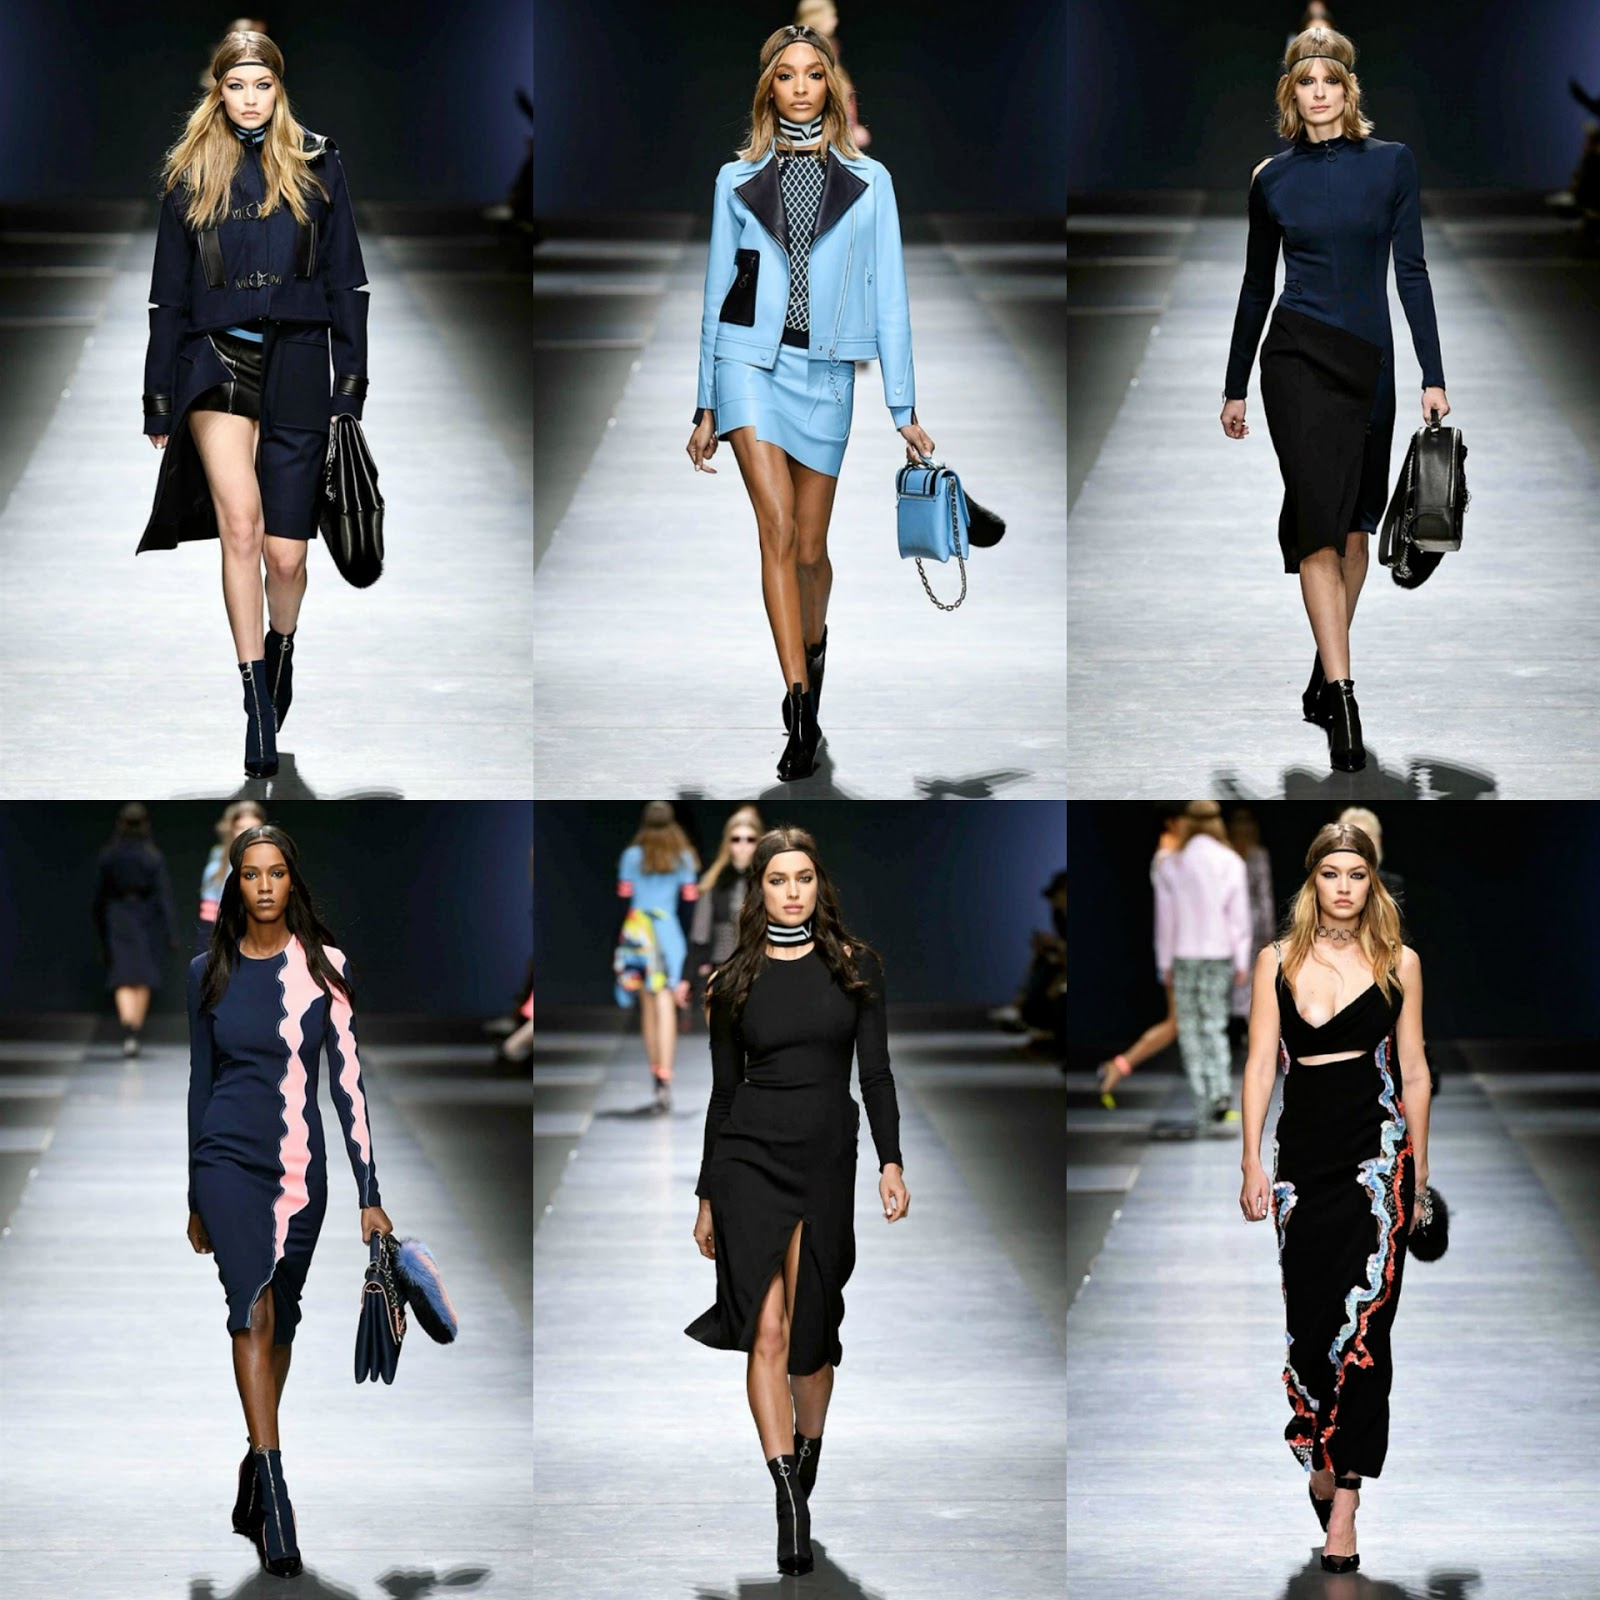 Eniwhere Fashion - sfilate - Milano Fashion Week - Versace